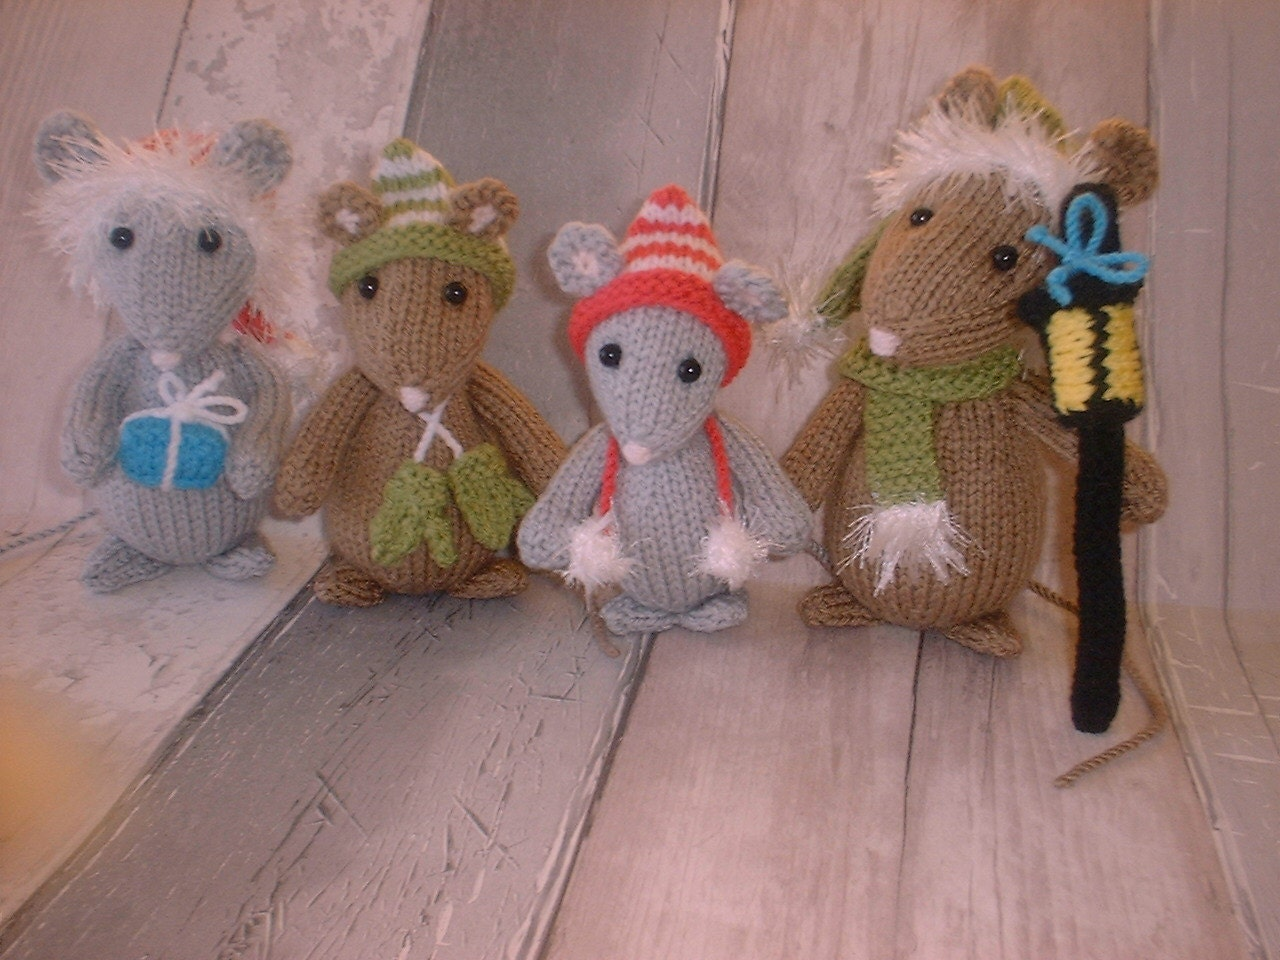 Knitting Patterns For Christmas Mice : Pdf knitting pattern for a cute family of Festive Mice